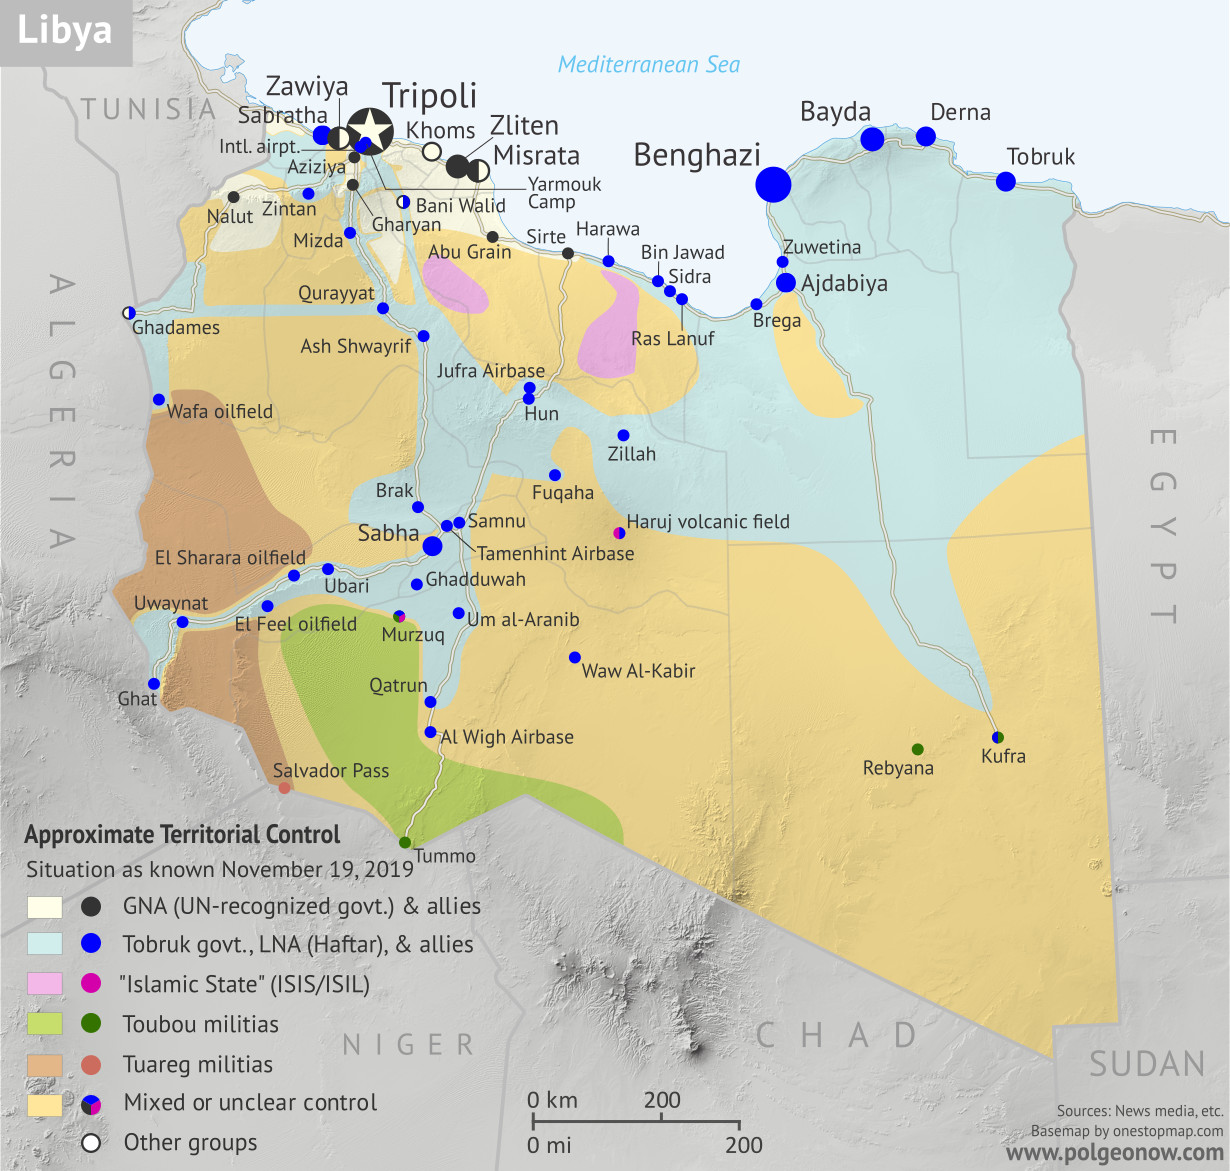 Libya civil war map: Who controls what? A concise, professional map of who controls Libya now (November 2019). Shows detailed territorial control in the Libyan Civil War as of September 27, 2019, including all major parties (Government of National Accord (GNA); Tobruk House of Representatives, General Haftar's Libyan National Army (LNA), and allies; Tuareg and Toubou (Tebu, Tubu) militias in the south; the so-called Islamic State (ISIS/ISIL); and other groups such as the National Salvation Government (NSG)). Includes recent locations of interest including Yarmouk Camp, Murzuq, Aziziya, and more. Colorblind accessible.